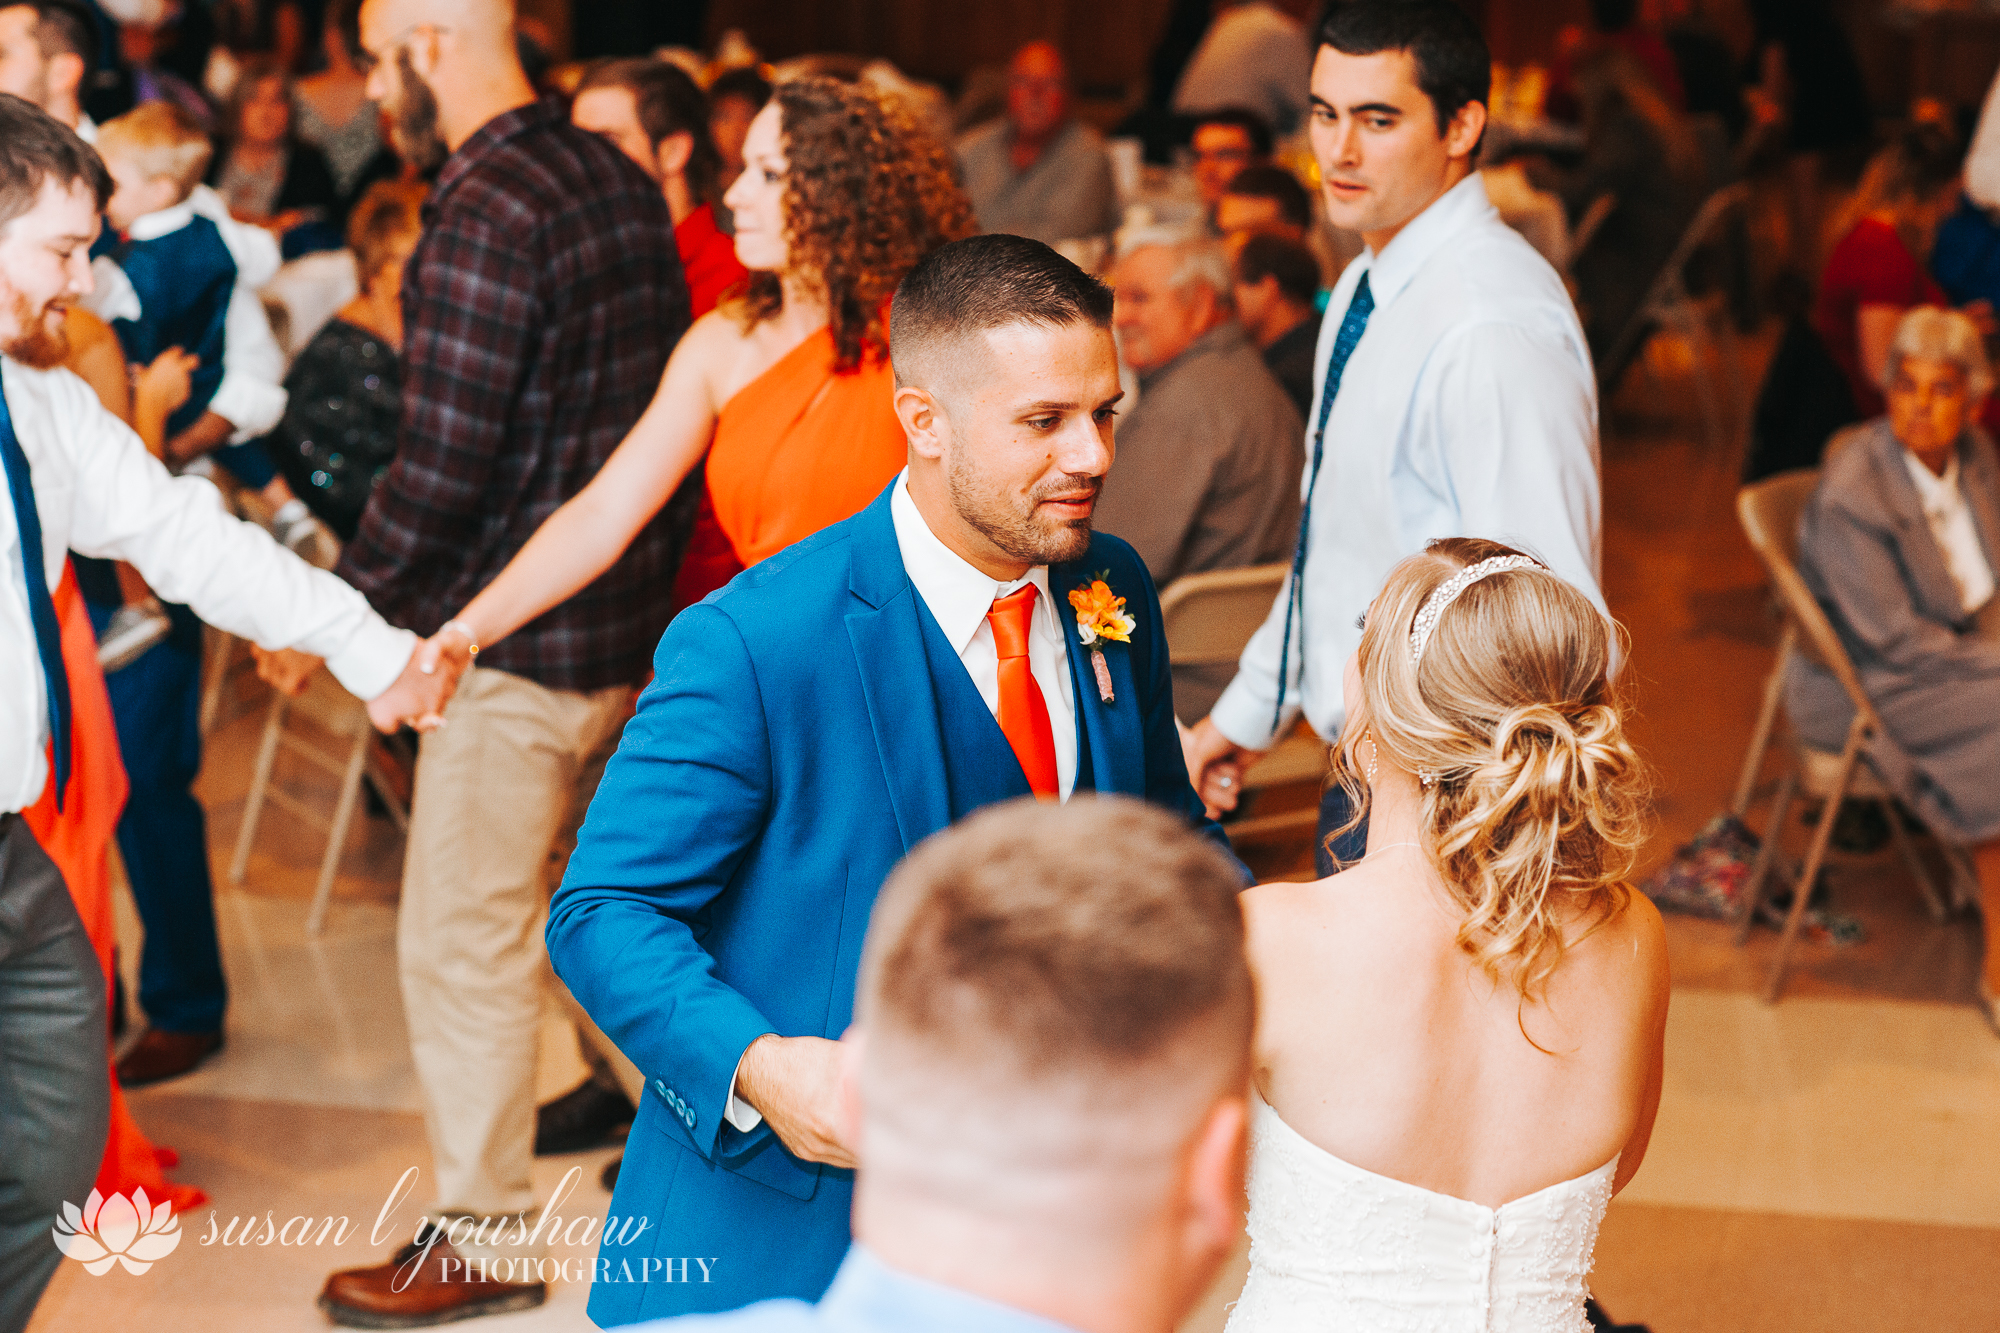 BLOG Kylie and corey Bennet 10-13-2018 SLY Photography LLC-178.jpg